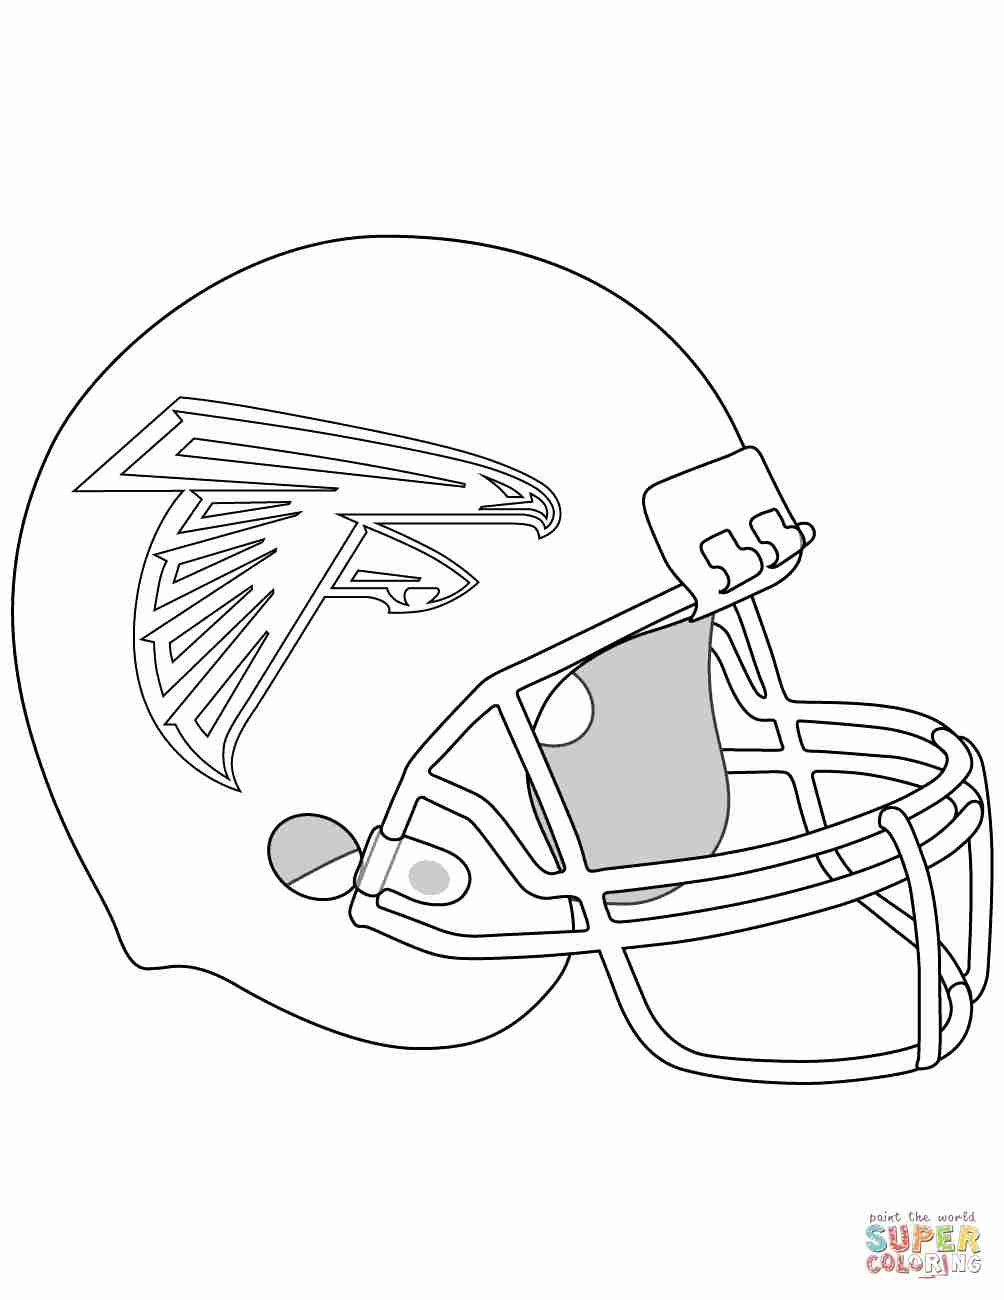 1004x1300 Carolina Panthers Logo Coloring Page Free Printable Pages Lively